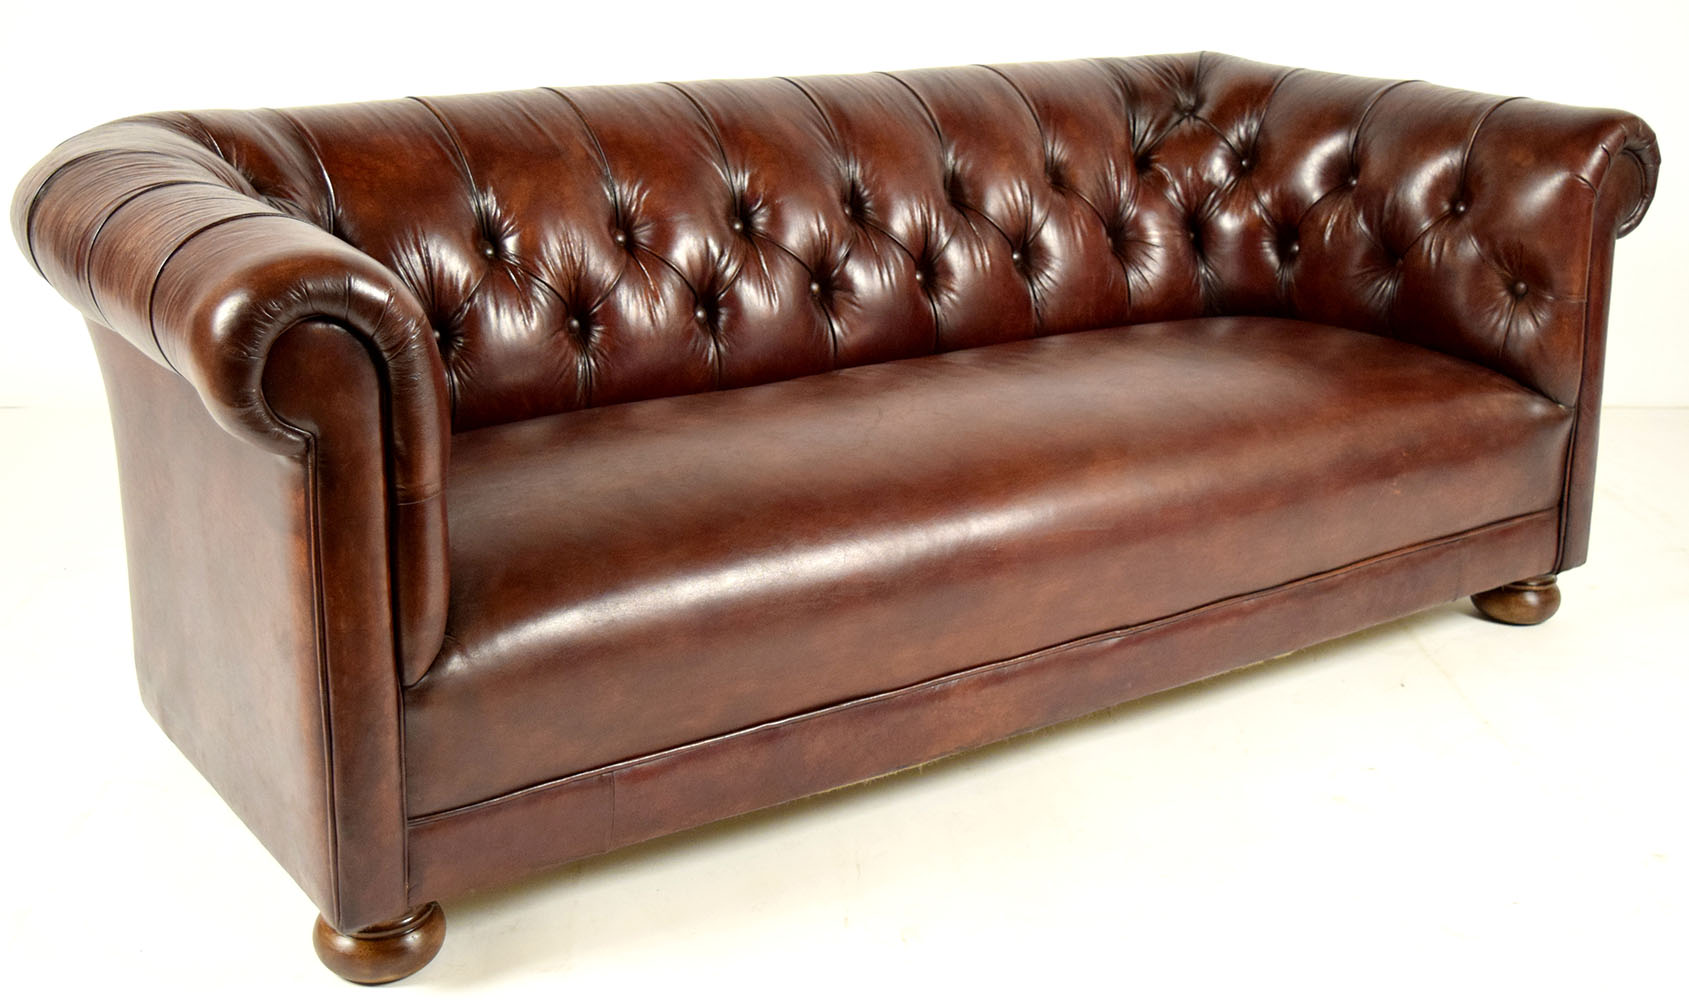 Vintage Chesterfield Leather Sofa Chairish